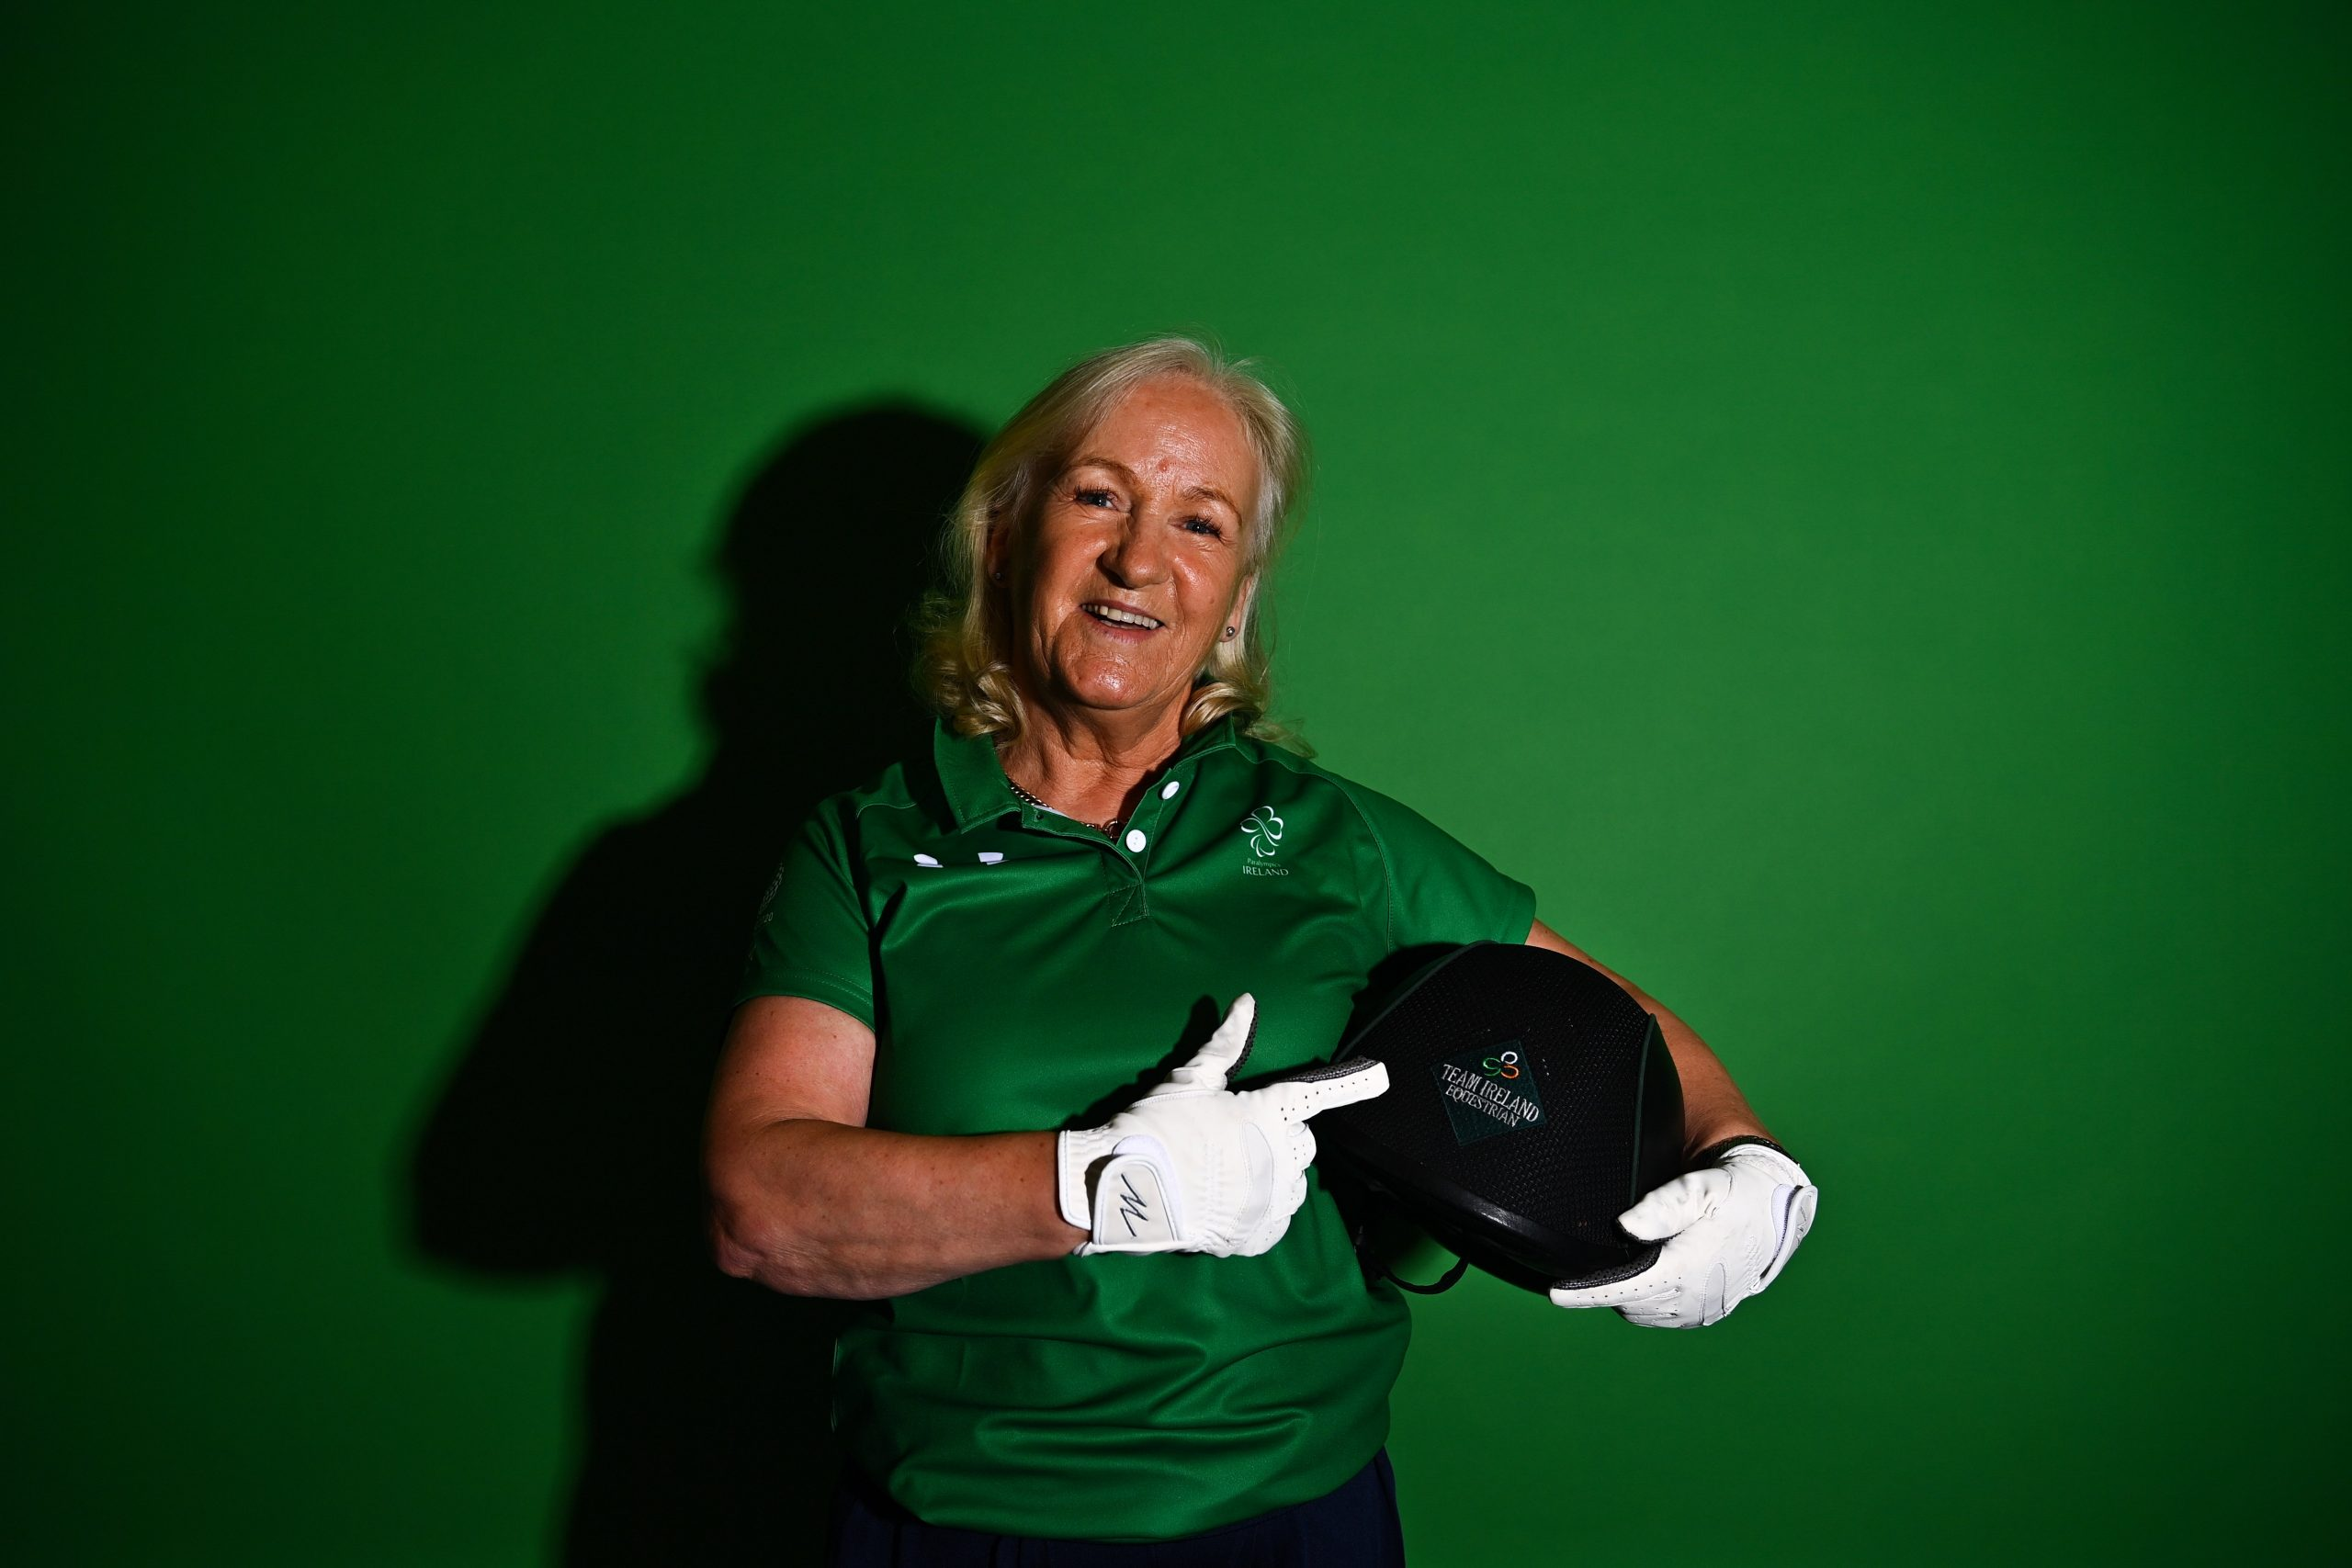 30 July 2021; Rosemary Gaffney during a Tokyo 2020 Paralympics Ireland announcement of four riders that will represent Ireland at the Tokyo 2020 Paralympic Games. The athletes are Michael Murphy with Clever Boy, Tamsin Addison with Fahrenheit, Kate Kerr Horan with Serafina T and Rosemary Gaffney with Verona. Photo by Eóin Noonan/Sportsfile *** NO REPRODUCTION FEE ***